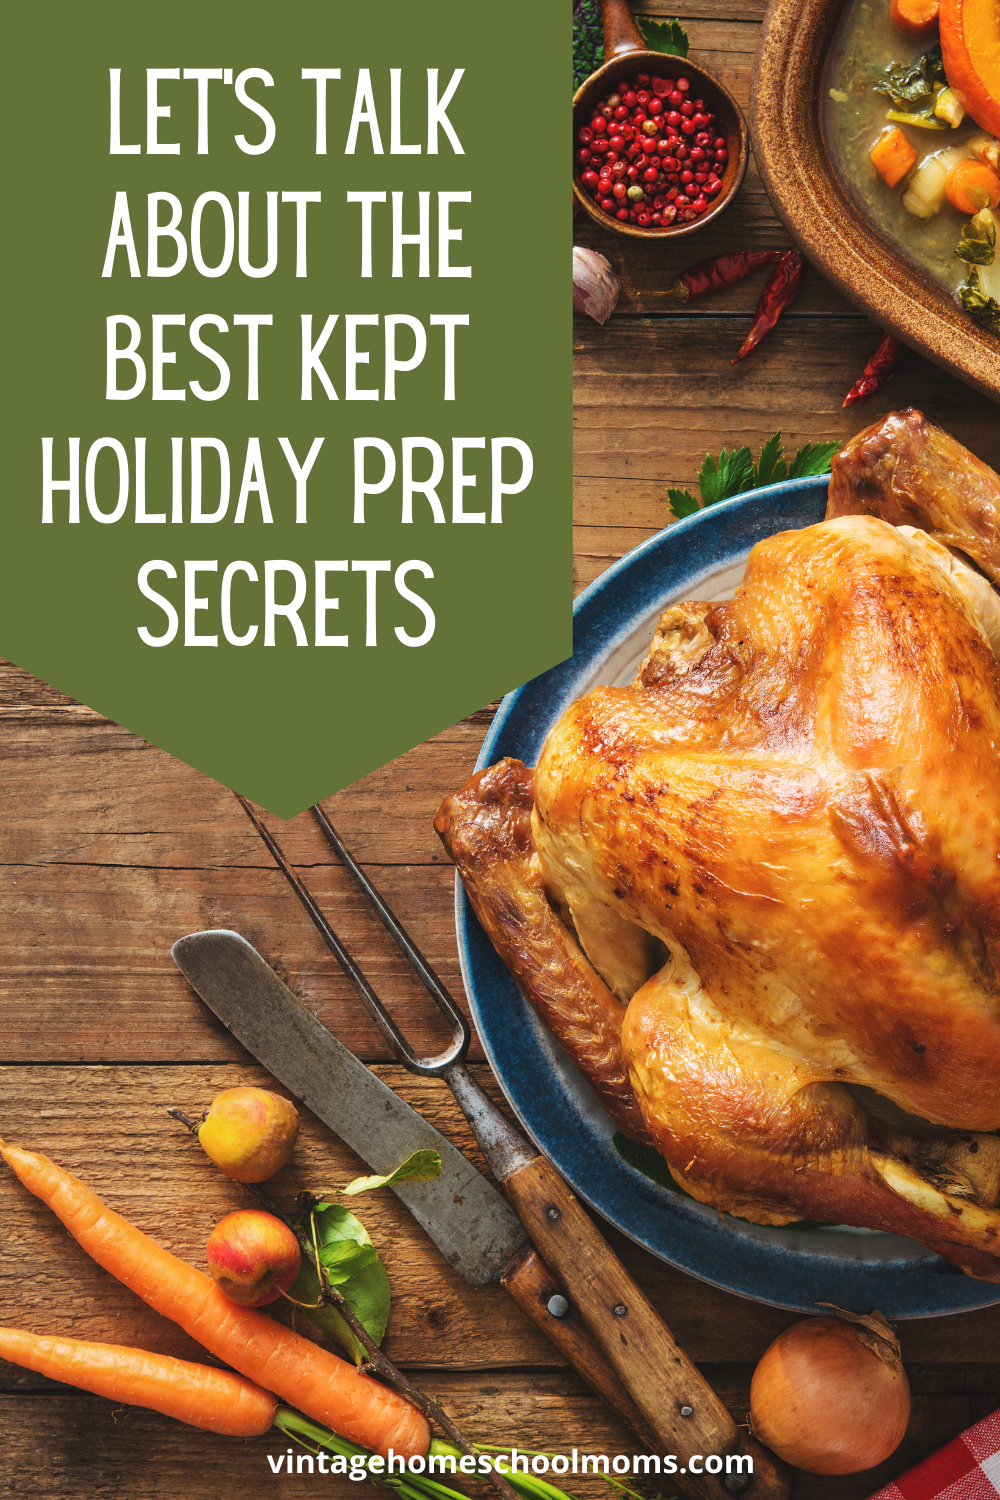 Let's Talk About The Best Kept Holiday Prep Secrets